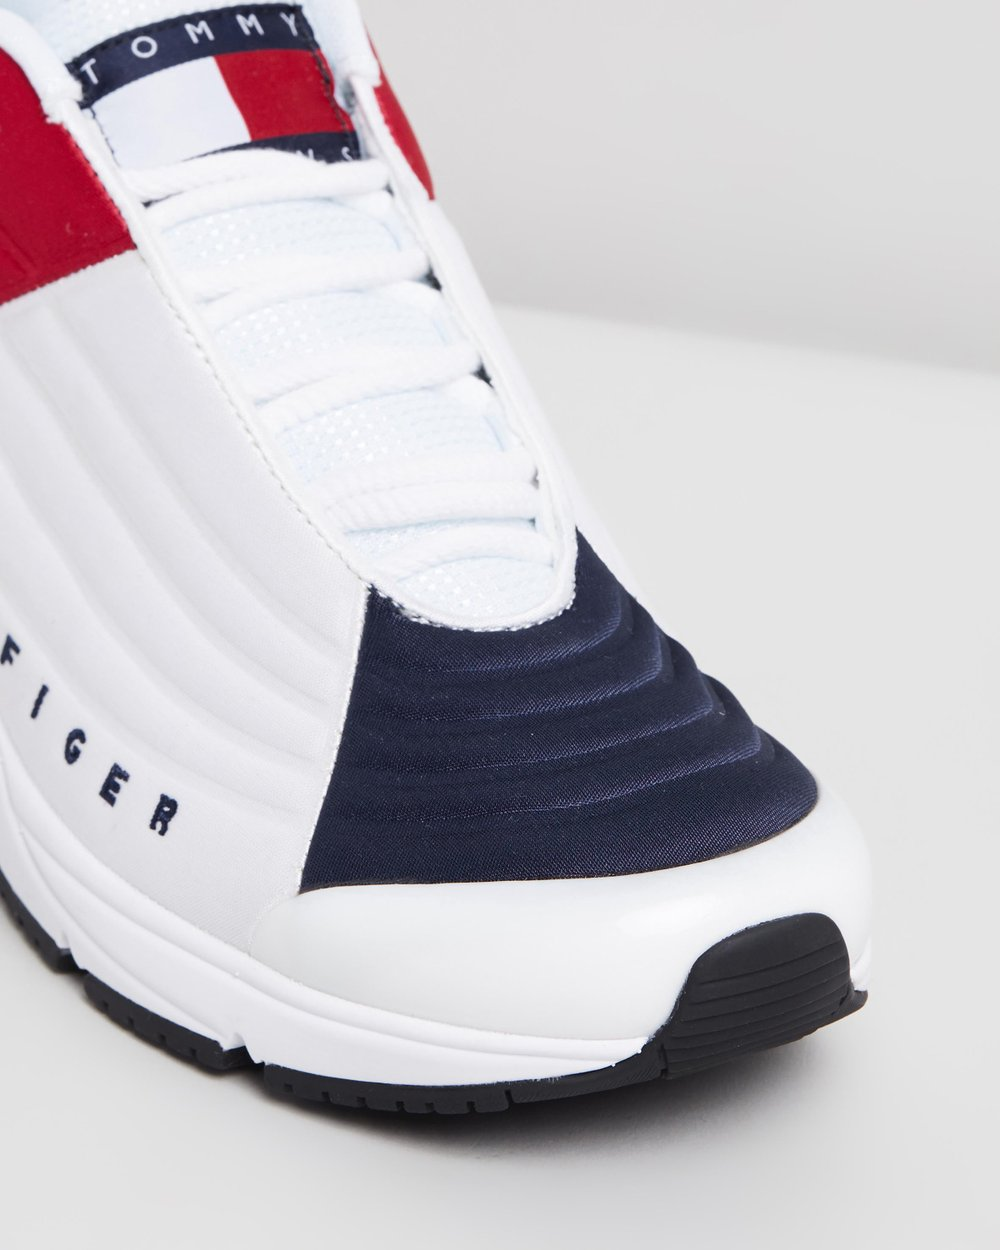 0e076bcf6 Phil 2C Sneakers by Tommy Hilfiger Online